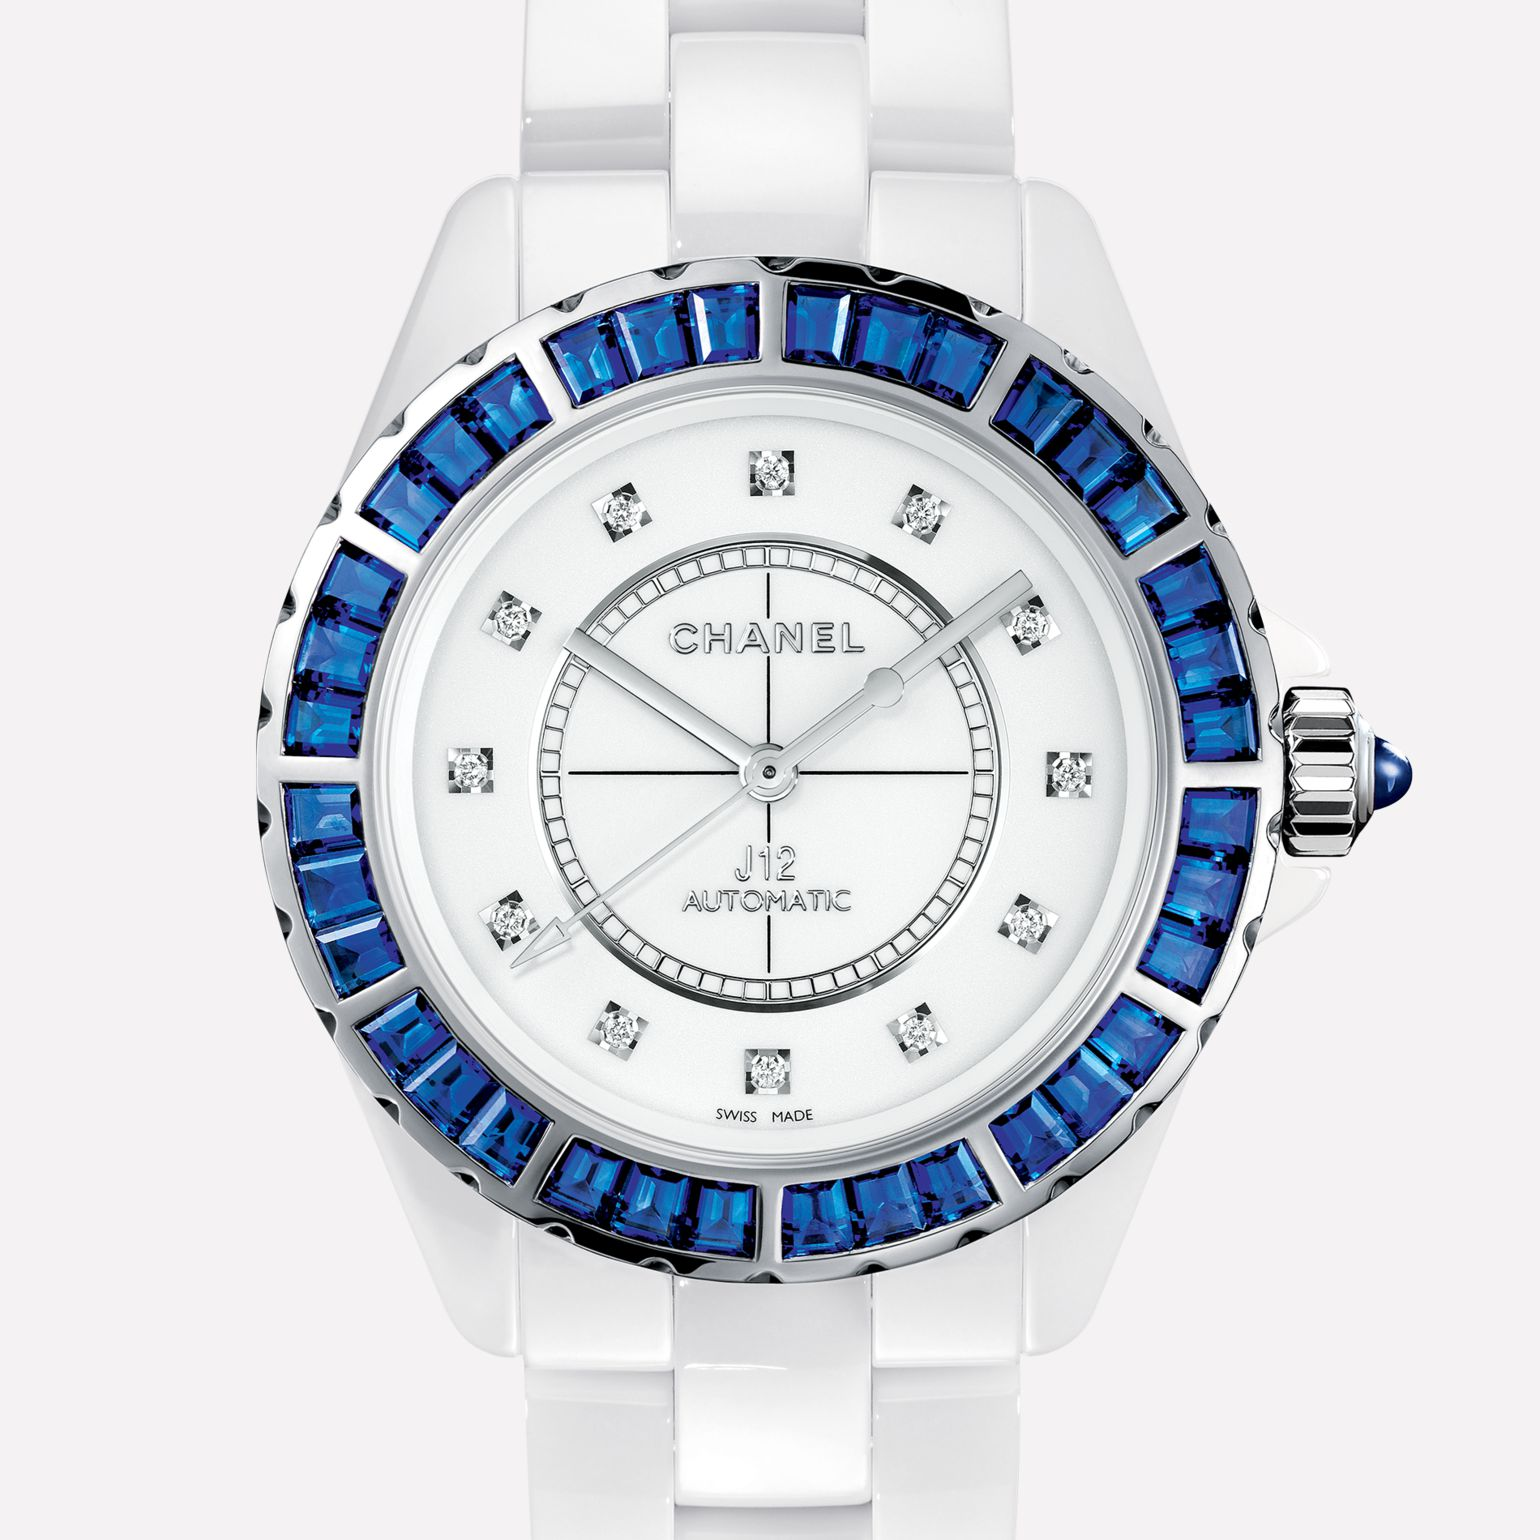 J12 Jewellery Watch White ceramic and white gold, bezel set with blue sapphires, diamond indicators